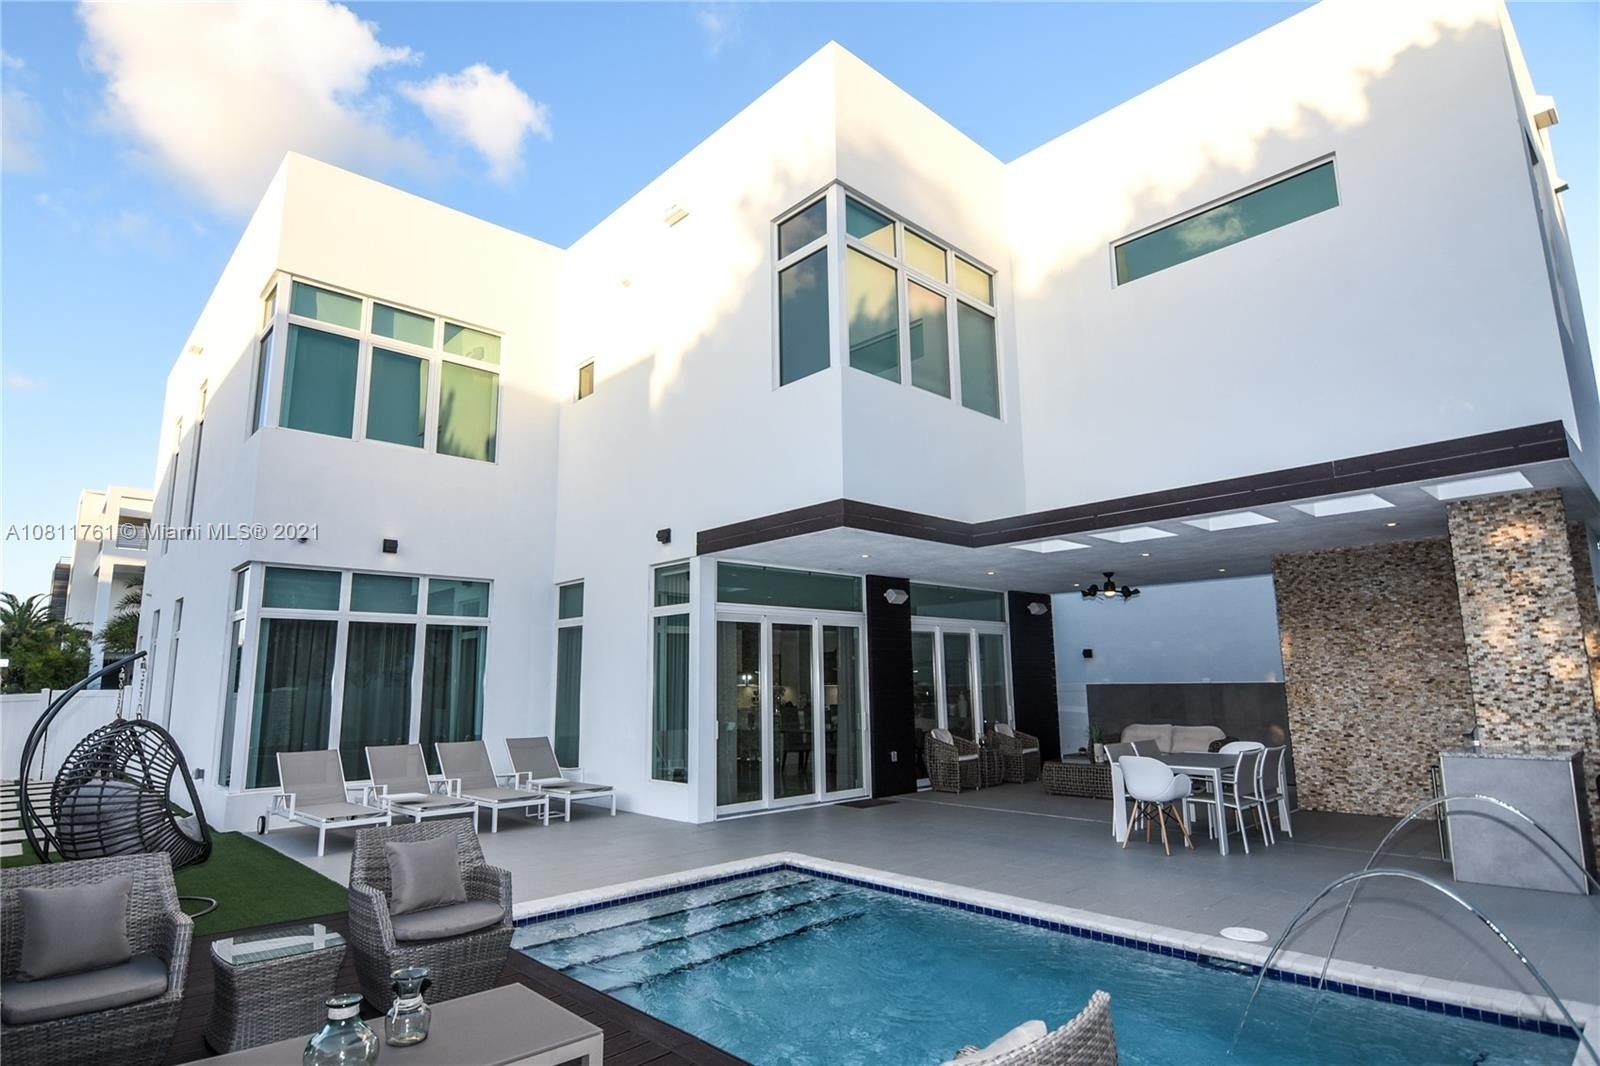 Property at Doral, FL 33178